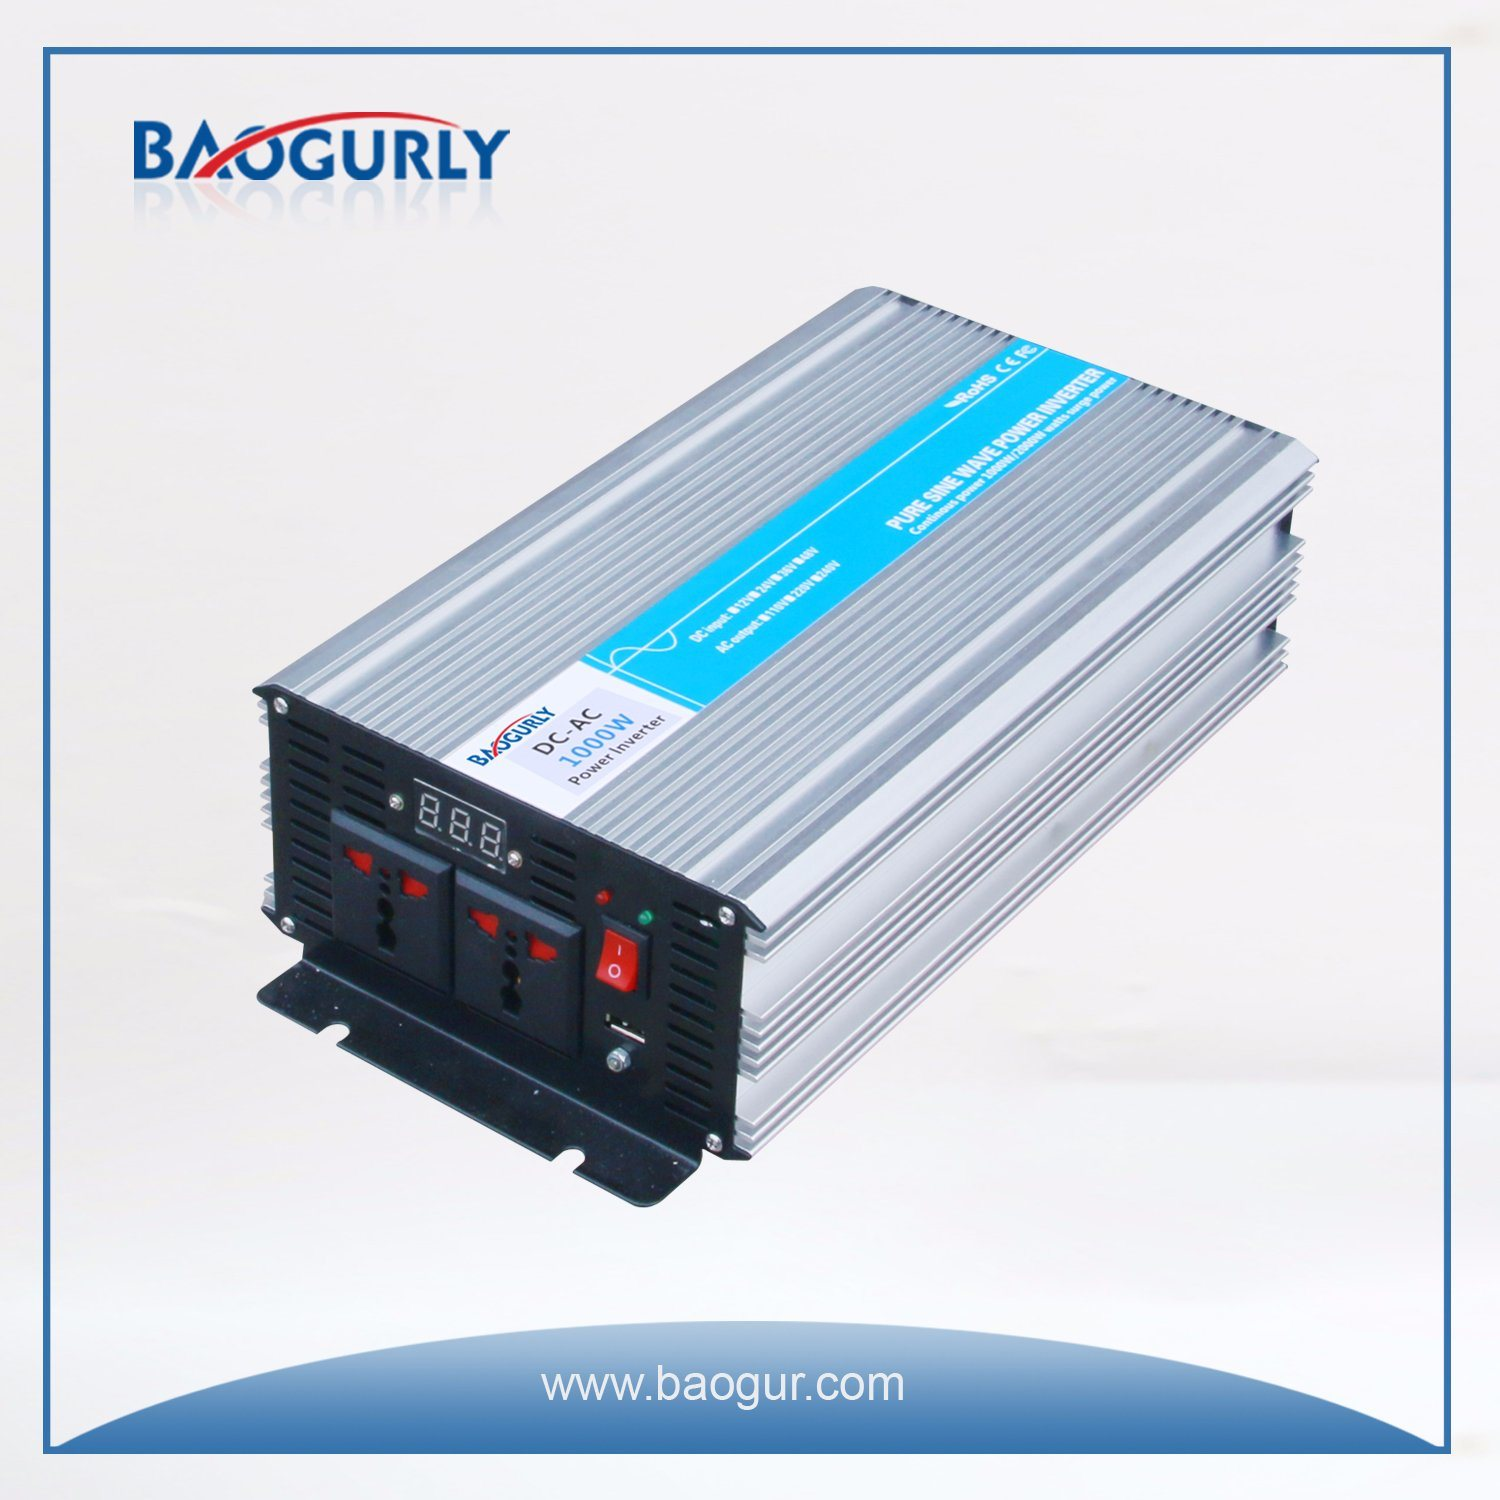 1000 Watt Pure Sine Wave Inverter Hot Item 1000 Watt Pure Sine Wave Dc To Ac Power Inverter